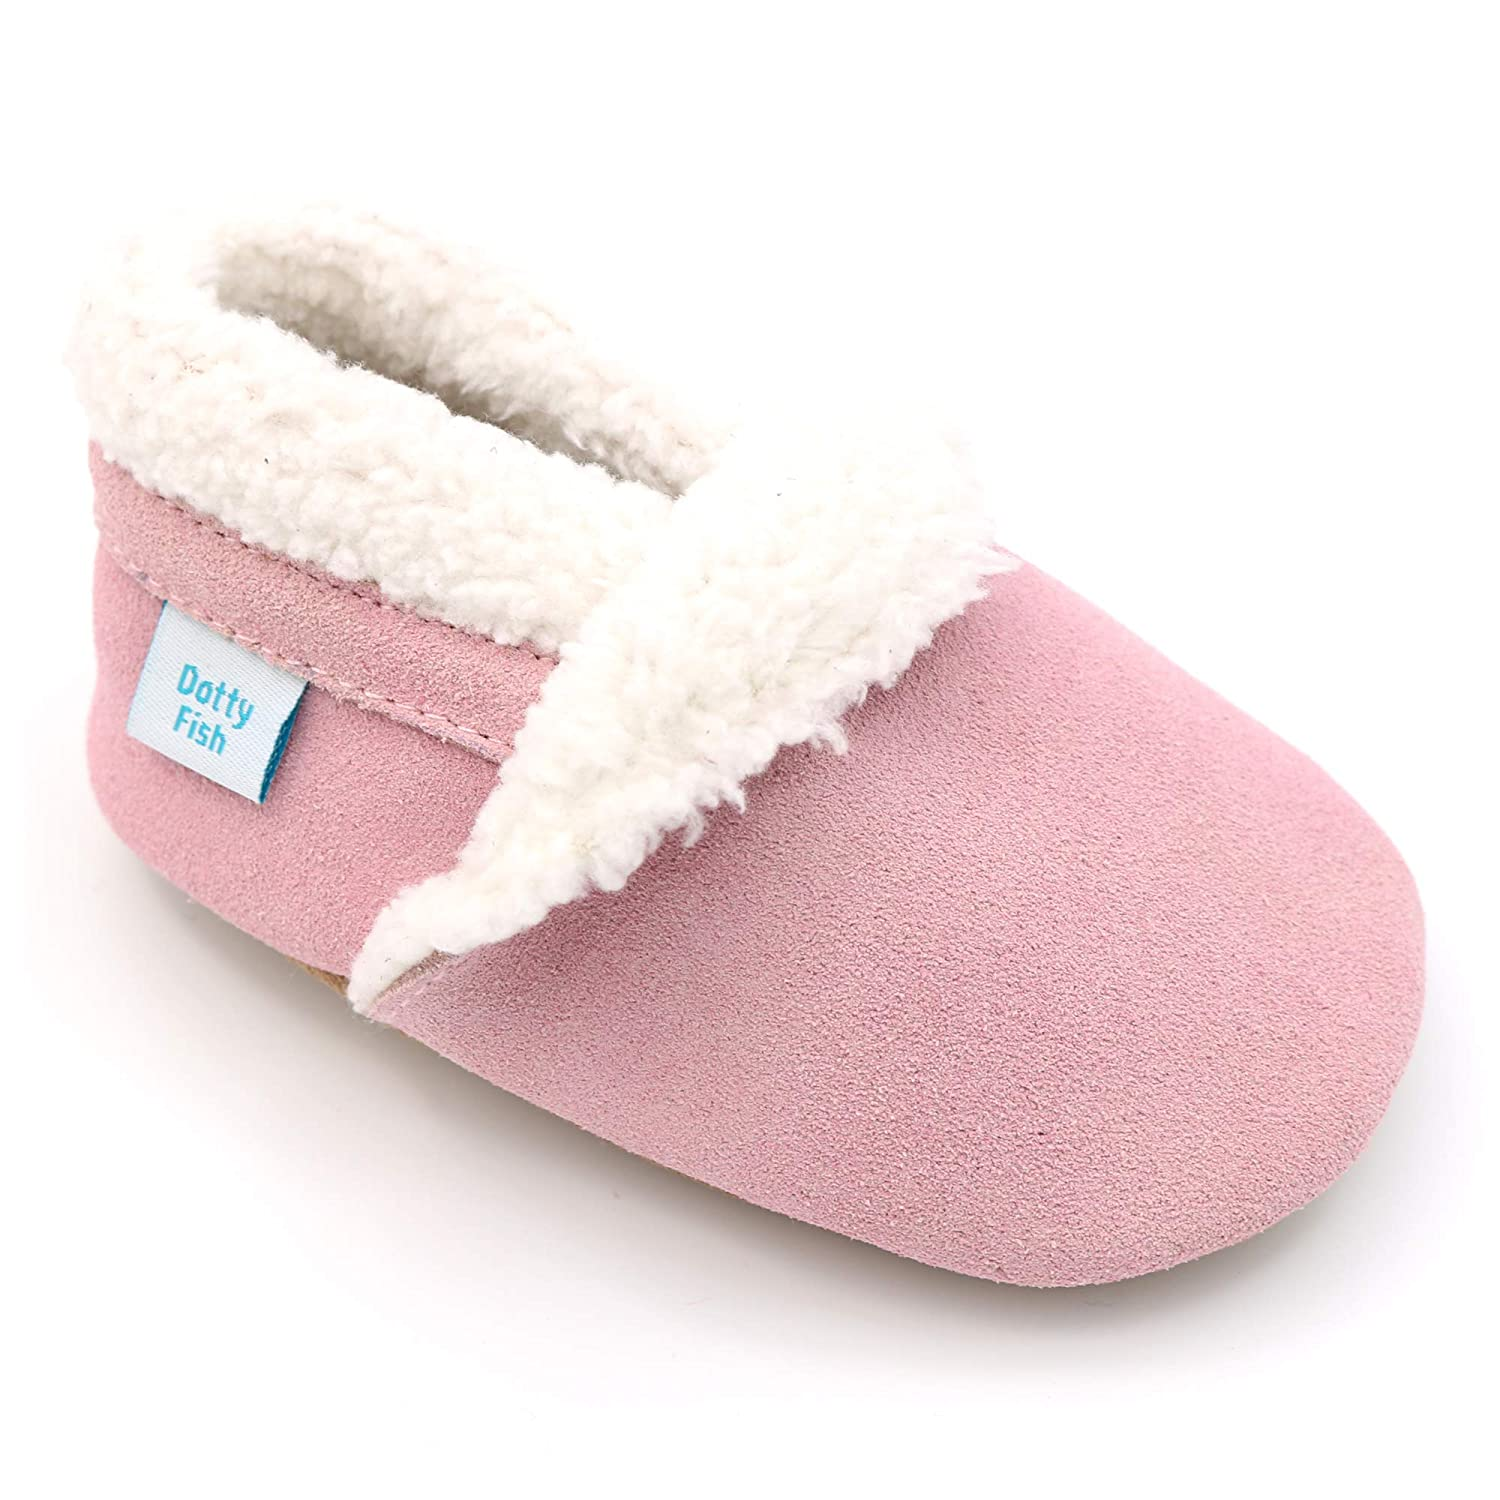 99fcdb141827 Dotty Fish Suede Baby Slippers. Fleece Lined. 0-6 Months to 4-5 Years.  Navy